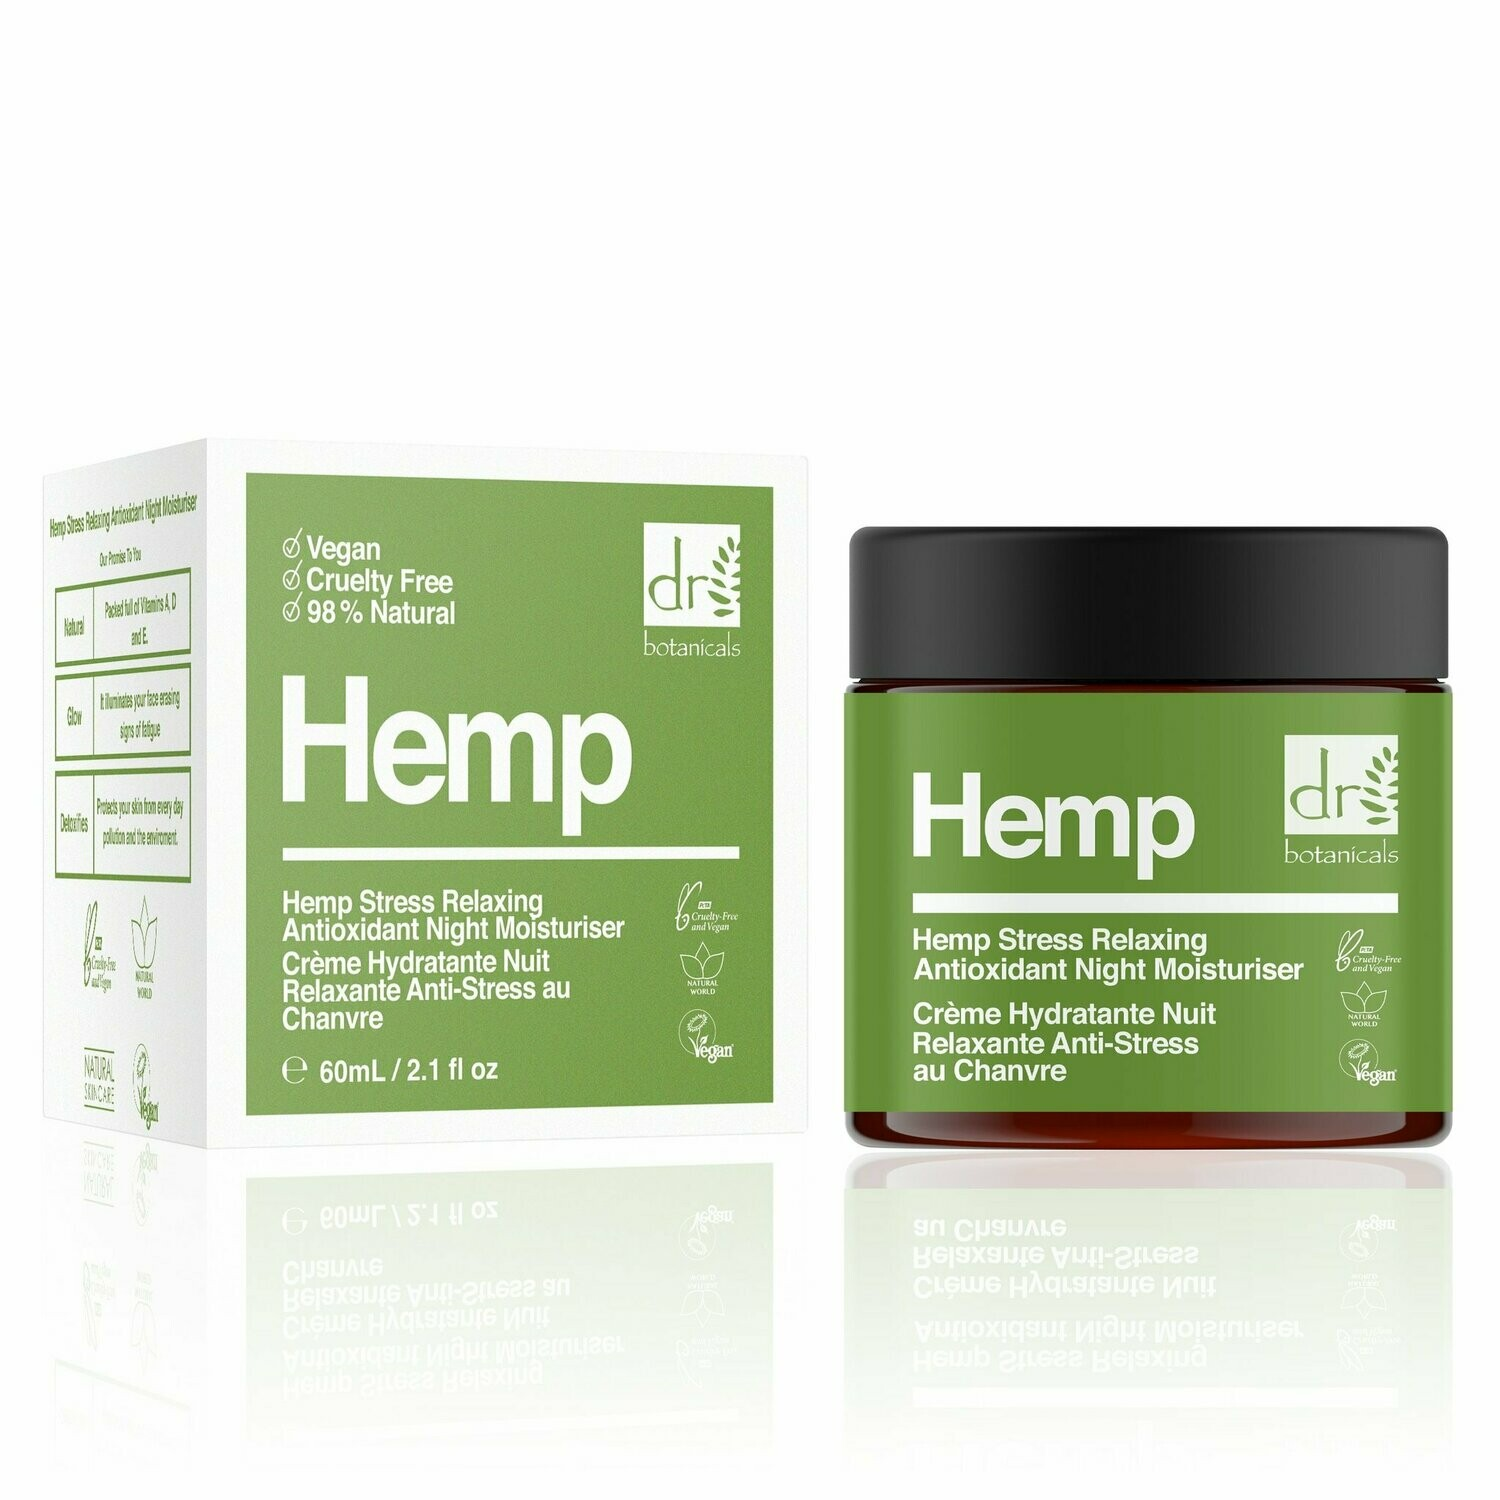 Hemp Stress Relaxing Antioxidant Night Moisturiser 60ml